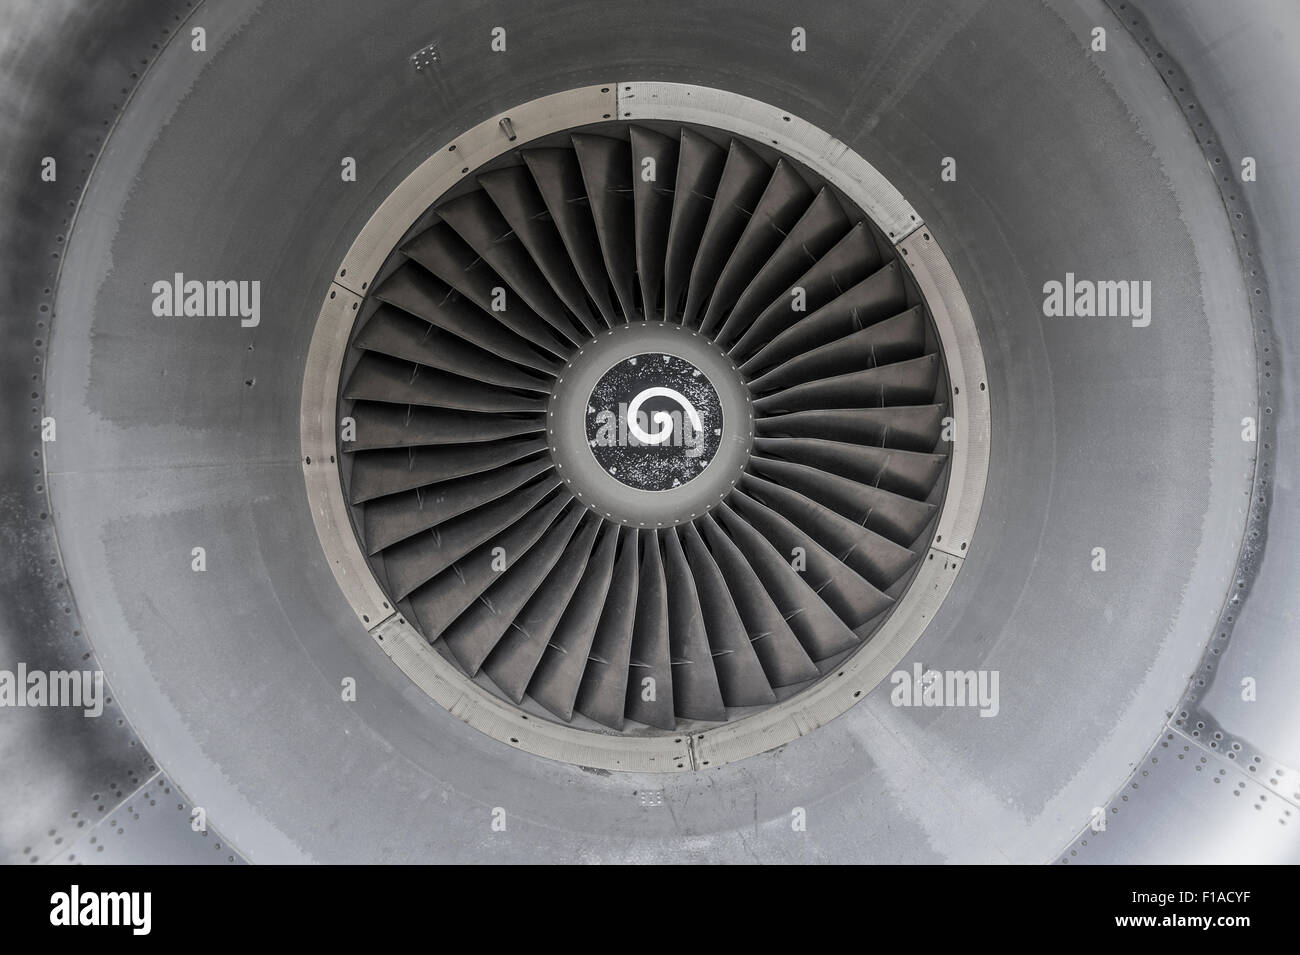 Inside Airplane Jet Engine - Stock Image